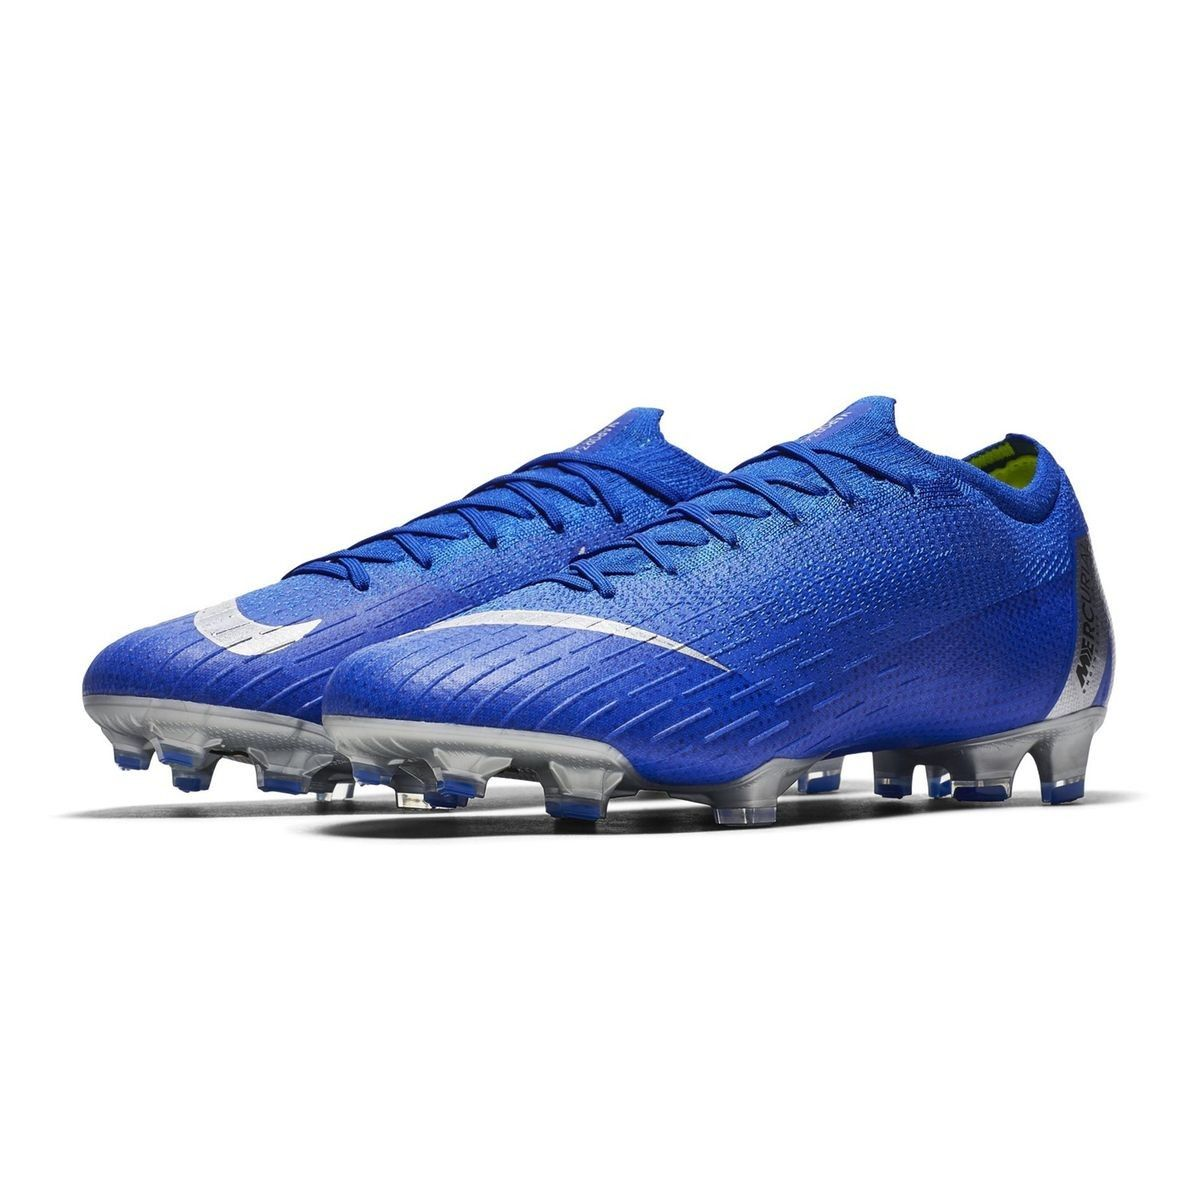 Chaussures Football Nike Mercurial Vapor Xii 360 Elite Fg